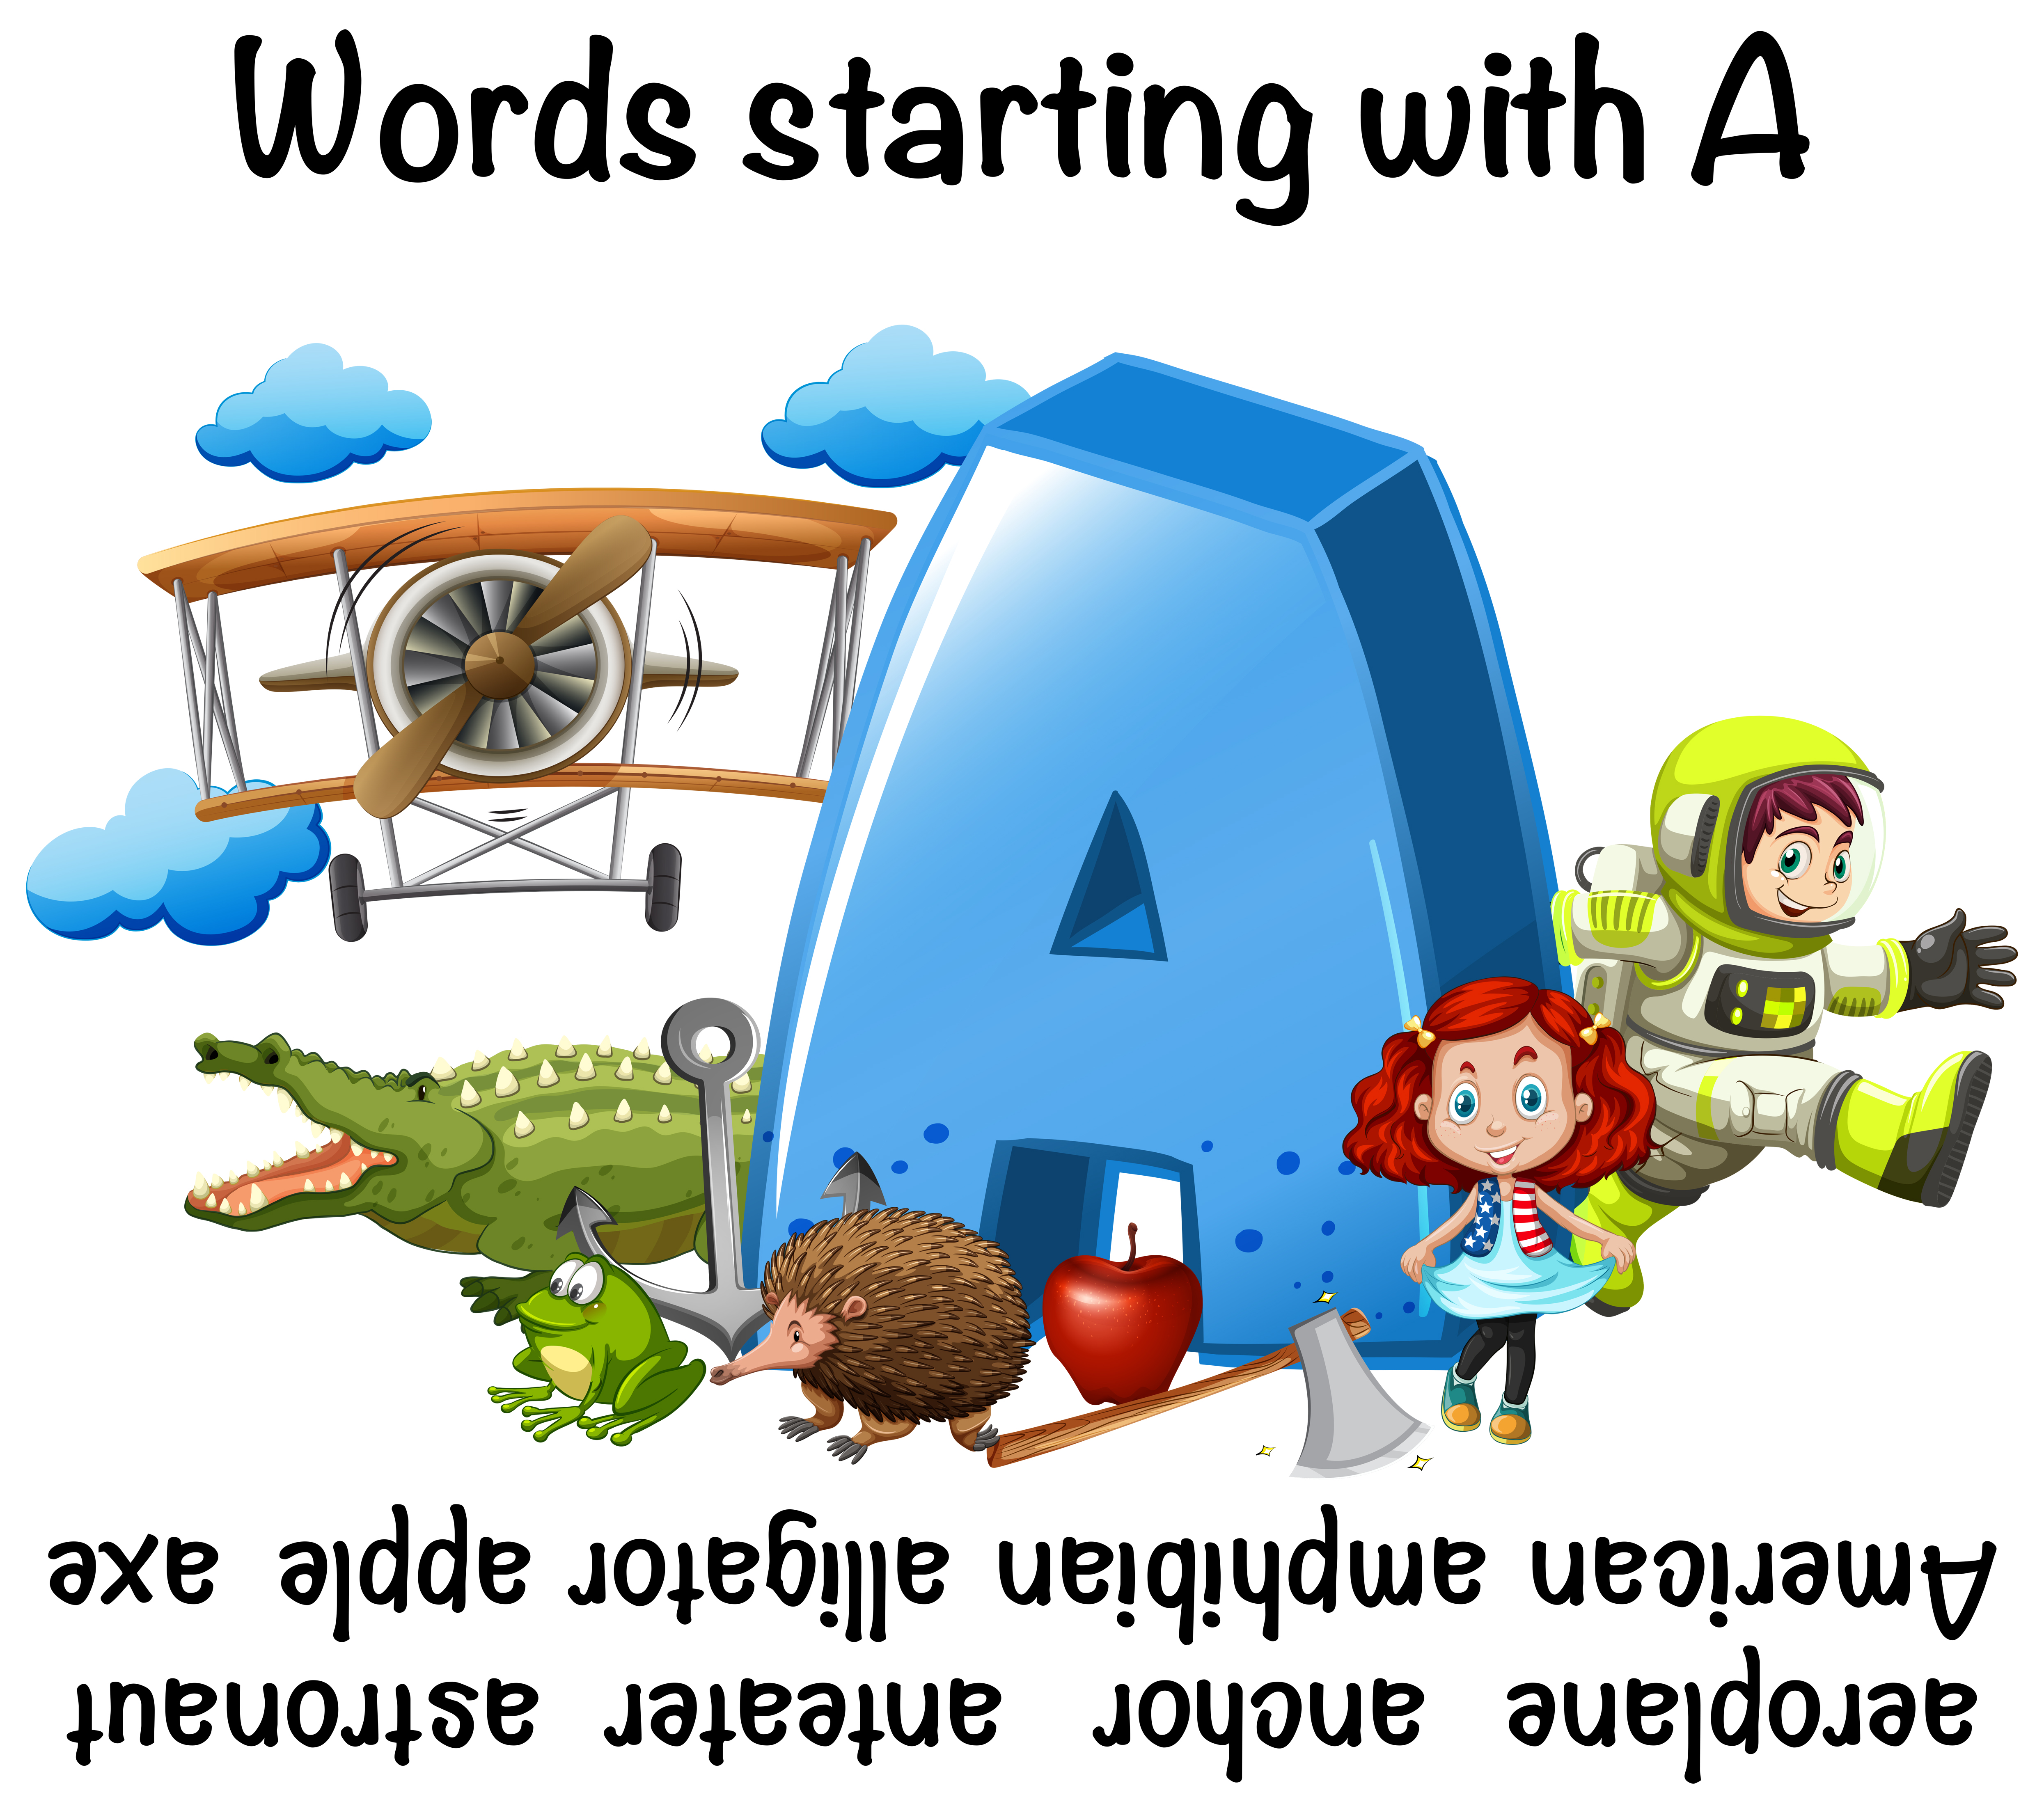 Worksheet Design For Words Starting With A